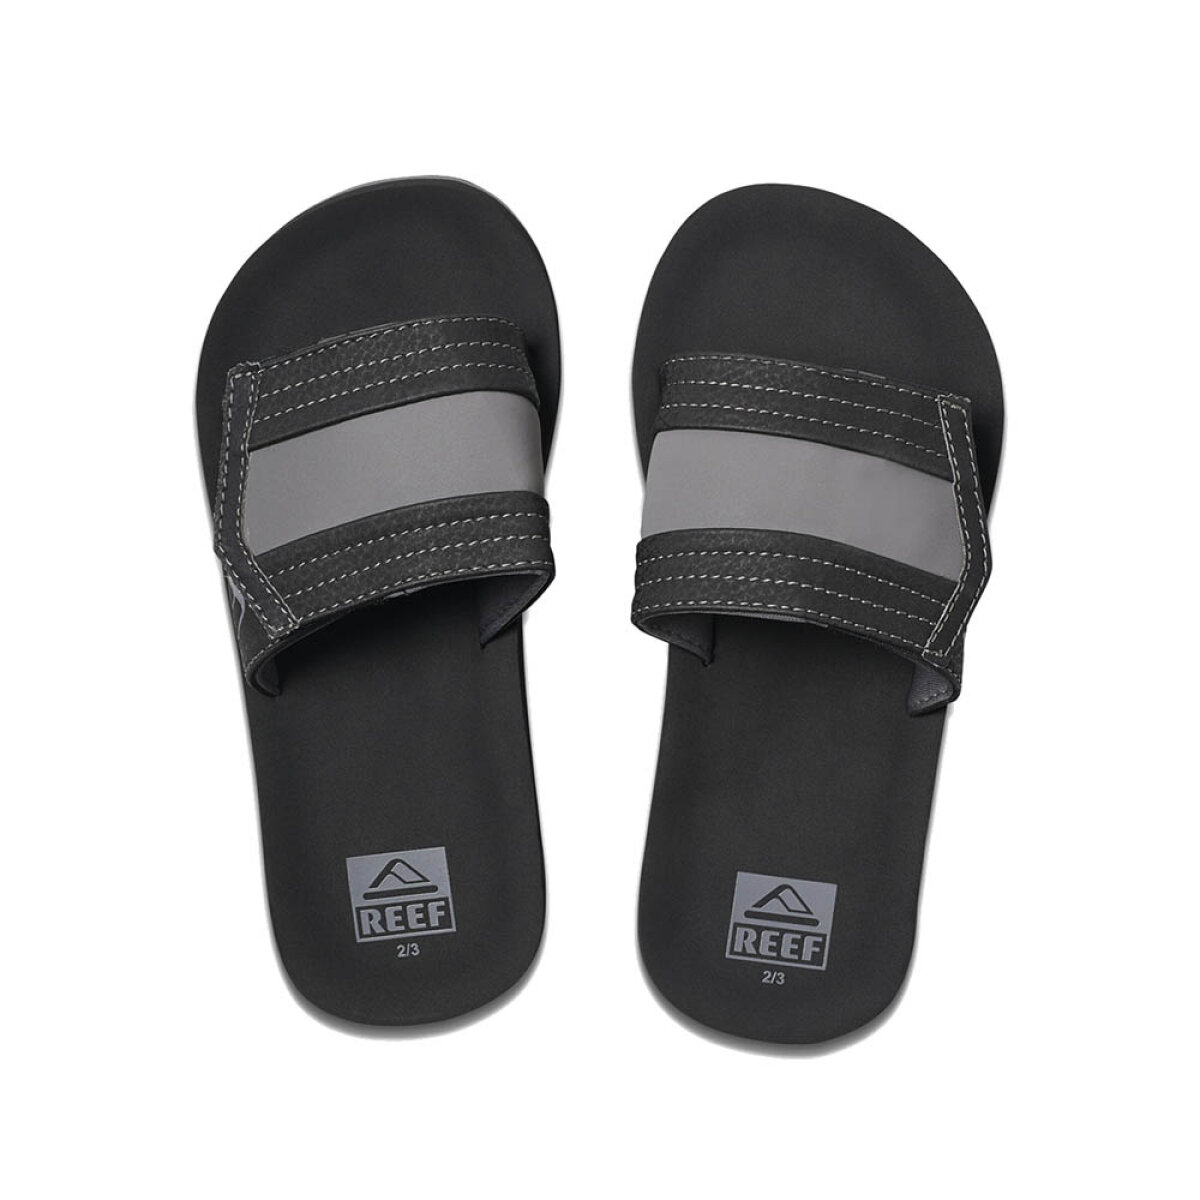 Reef jongens slippers Ahi Slide zwart